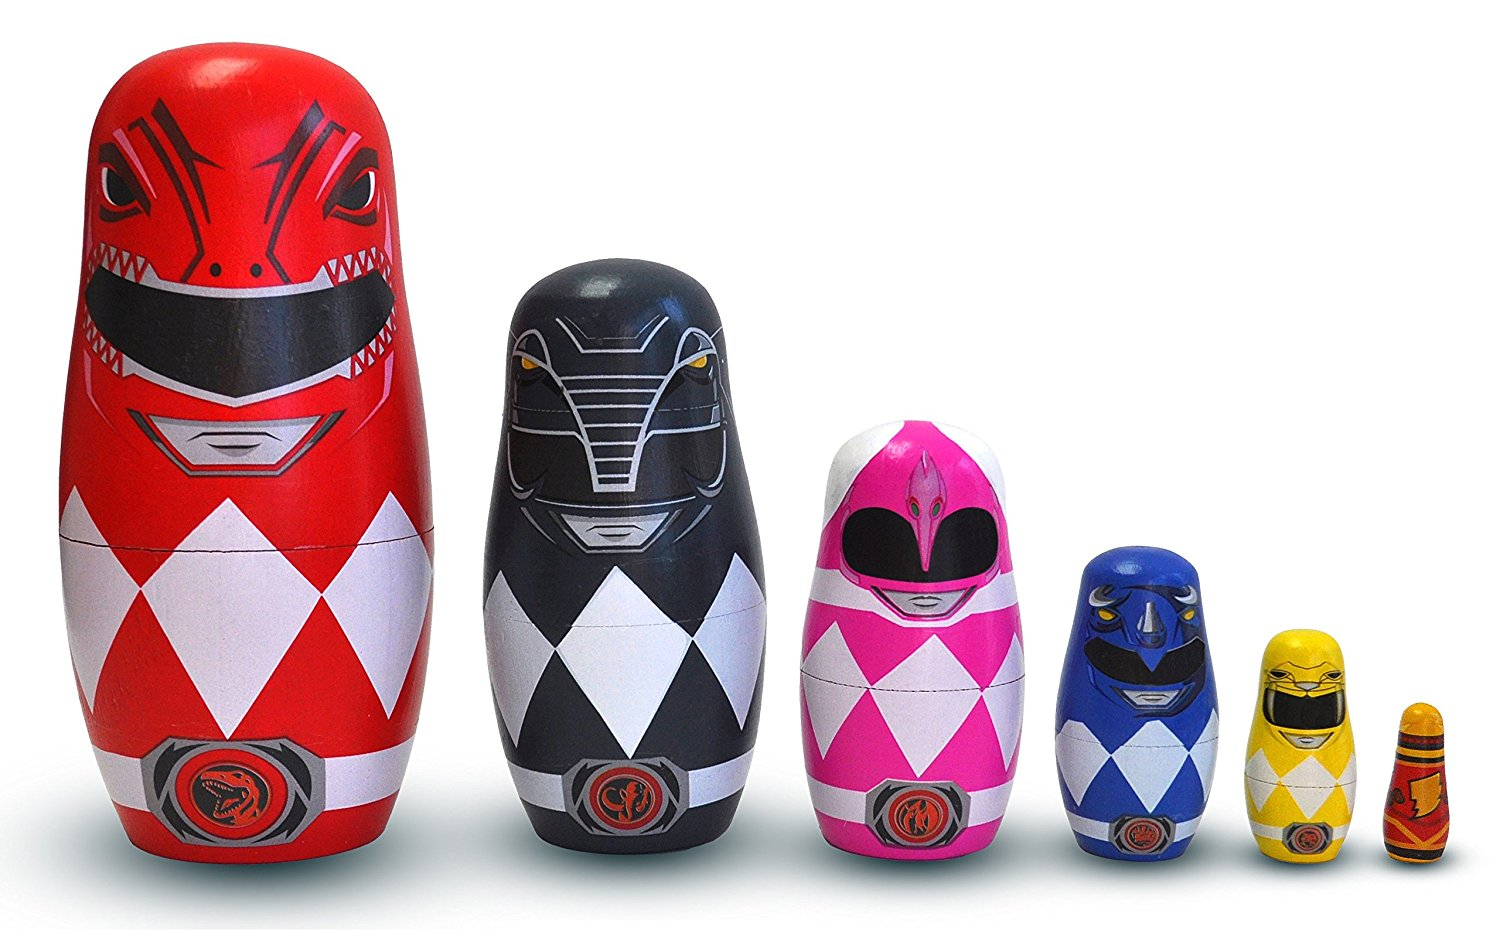 Nesting Dolls Power Rangers Set of 6 Toys Figure New 1905 by PPW